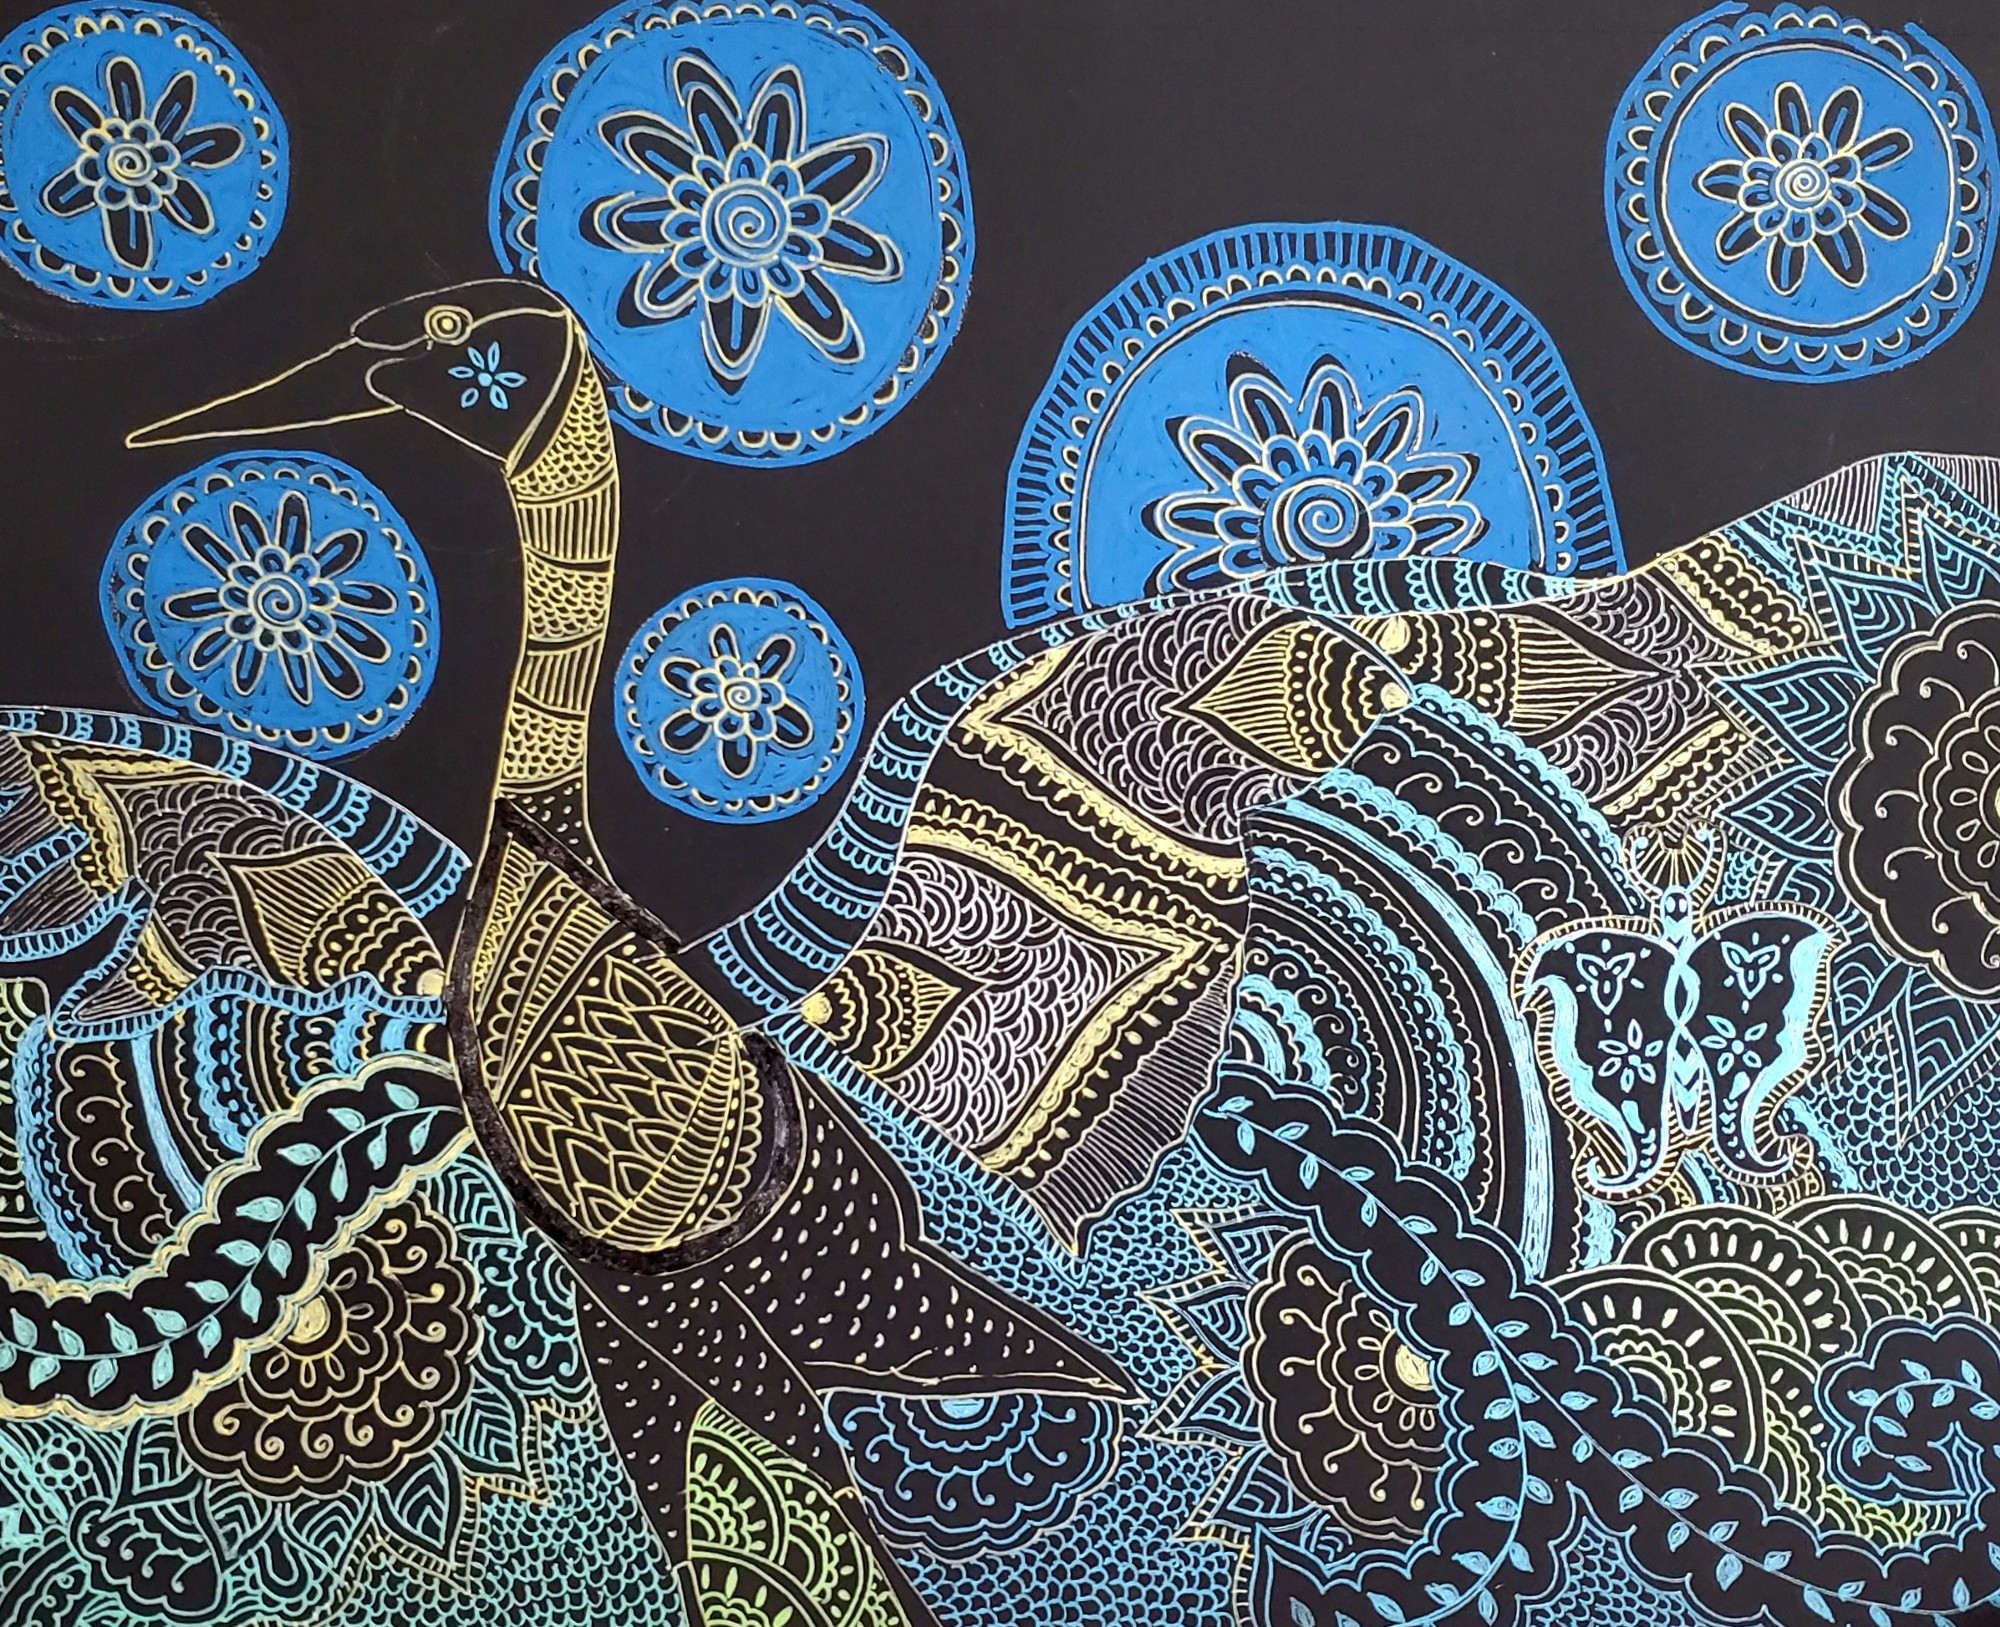 Illustration of a large bird spreading its wings. Light blue, yellow, and brown lines (with the dark blue background showing through) form ornate patterns on its feathers. Behind it float blue circles of various sizes that look like doilies.